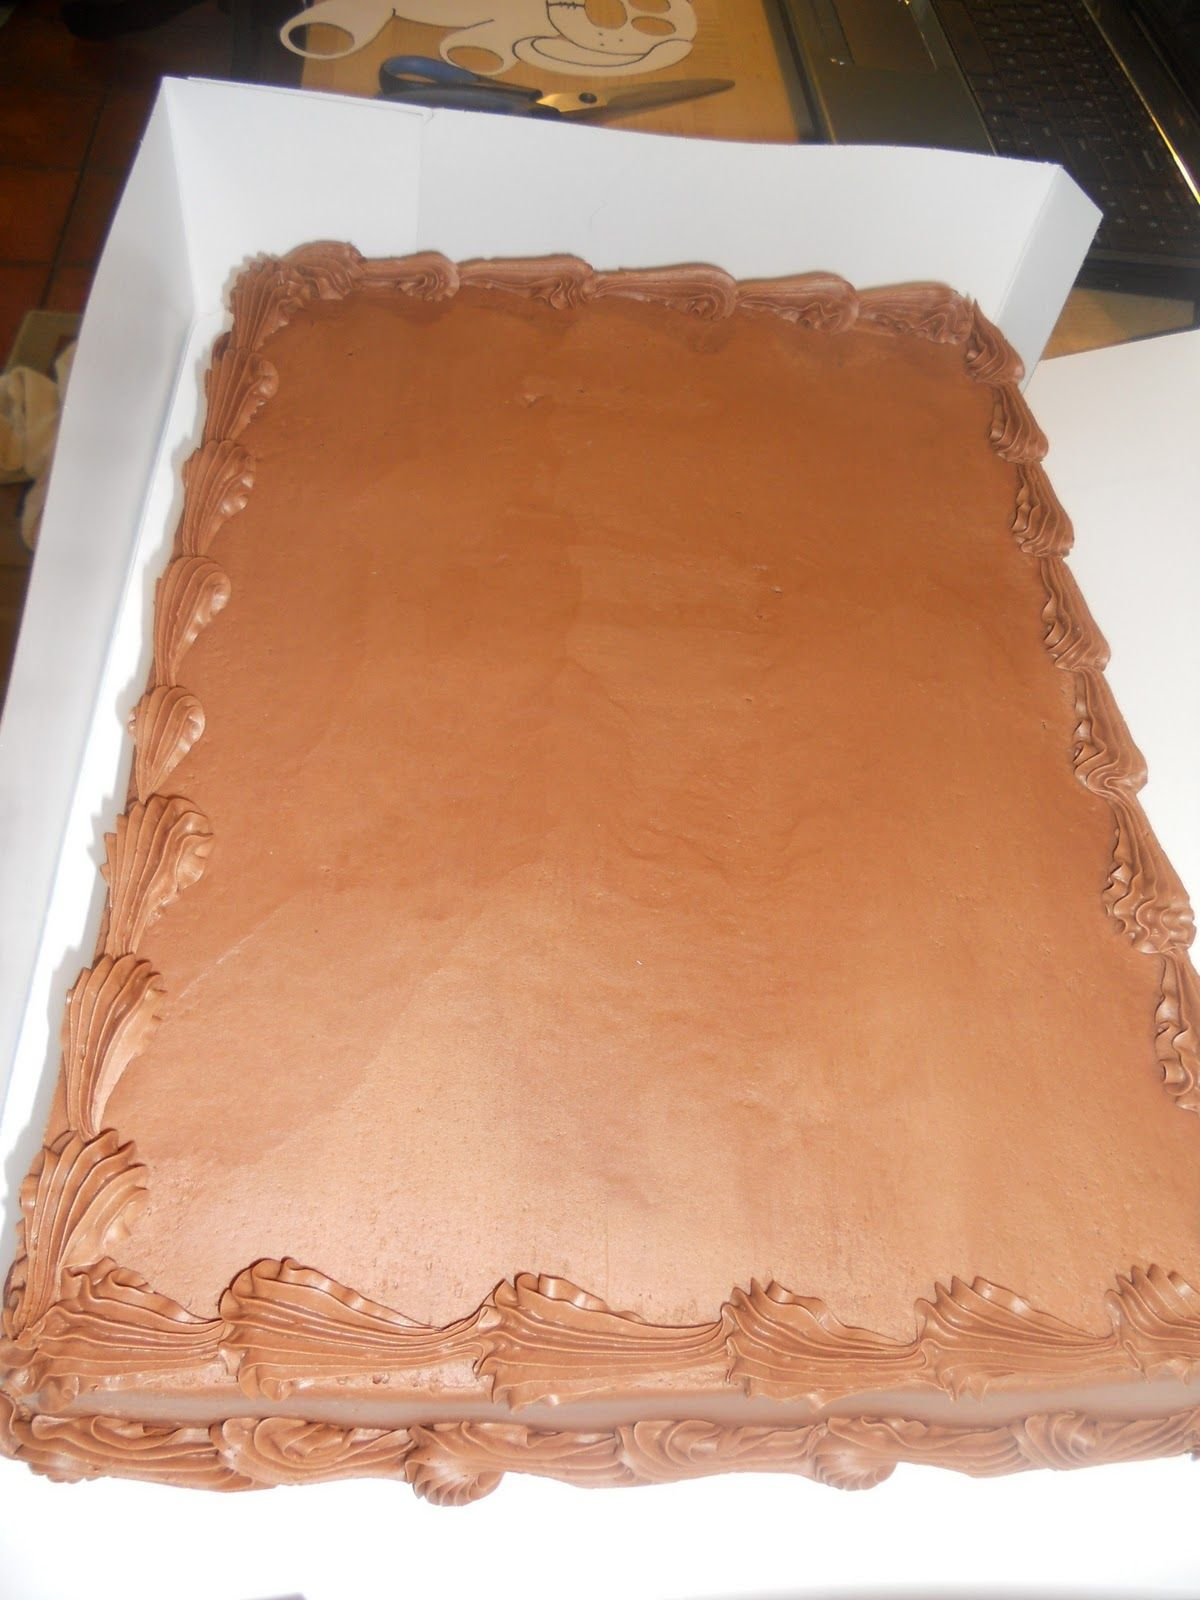 Plain costco chocolate sheet cake- will add a flower to coordinate ...